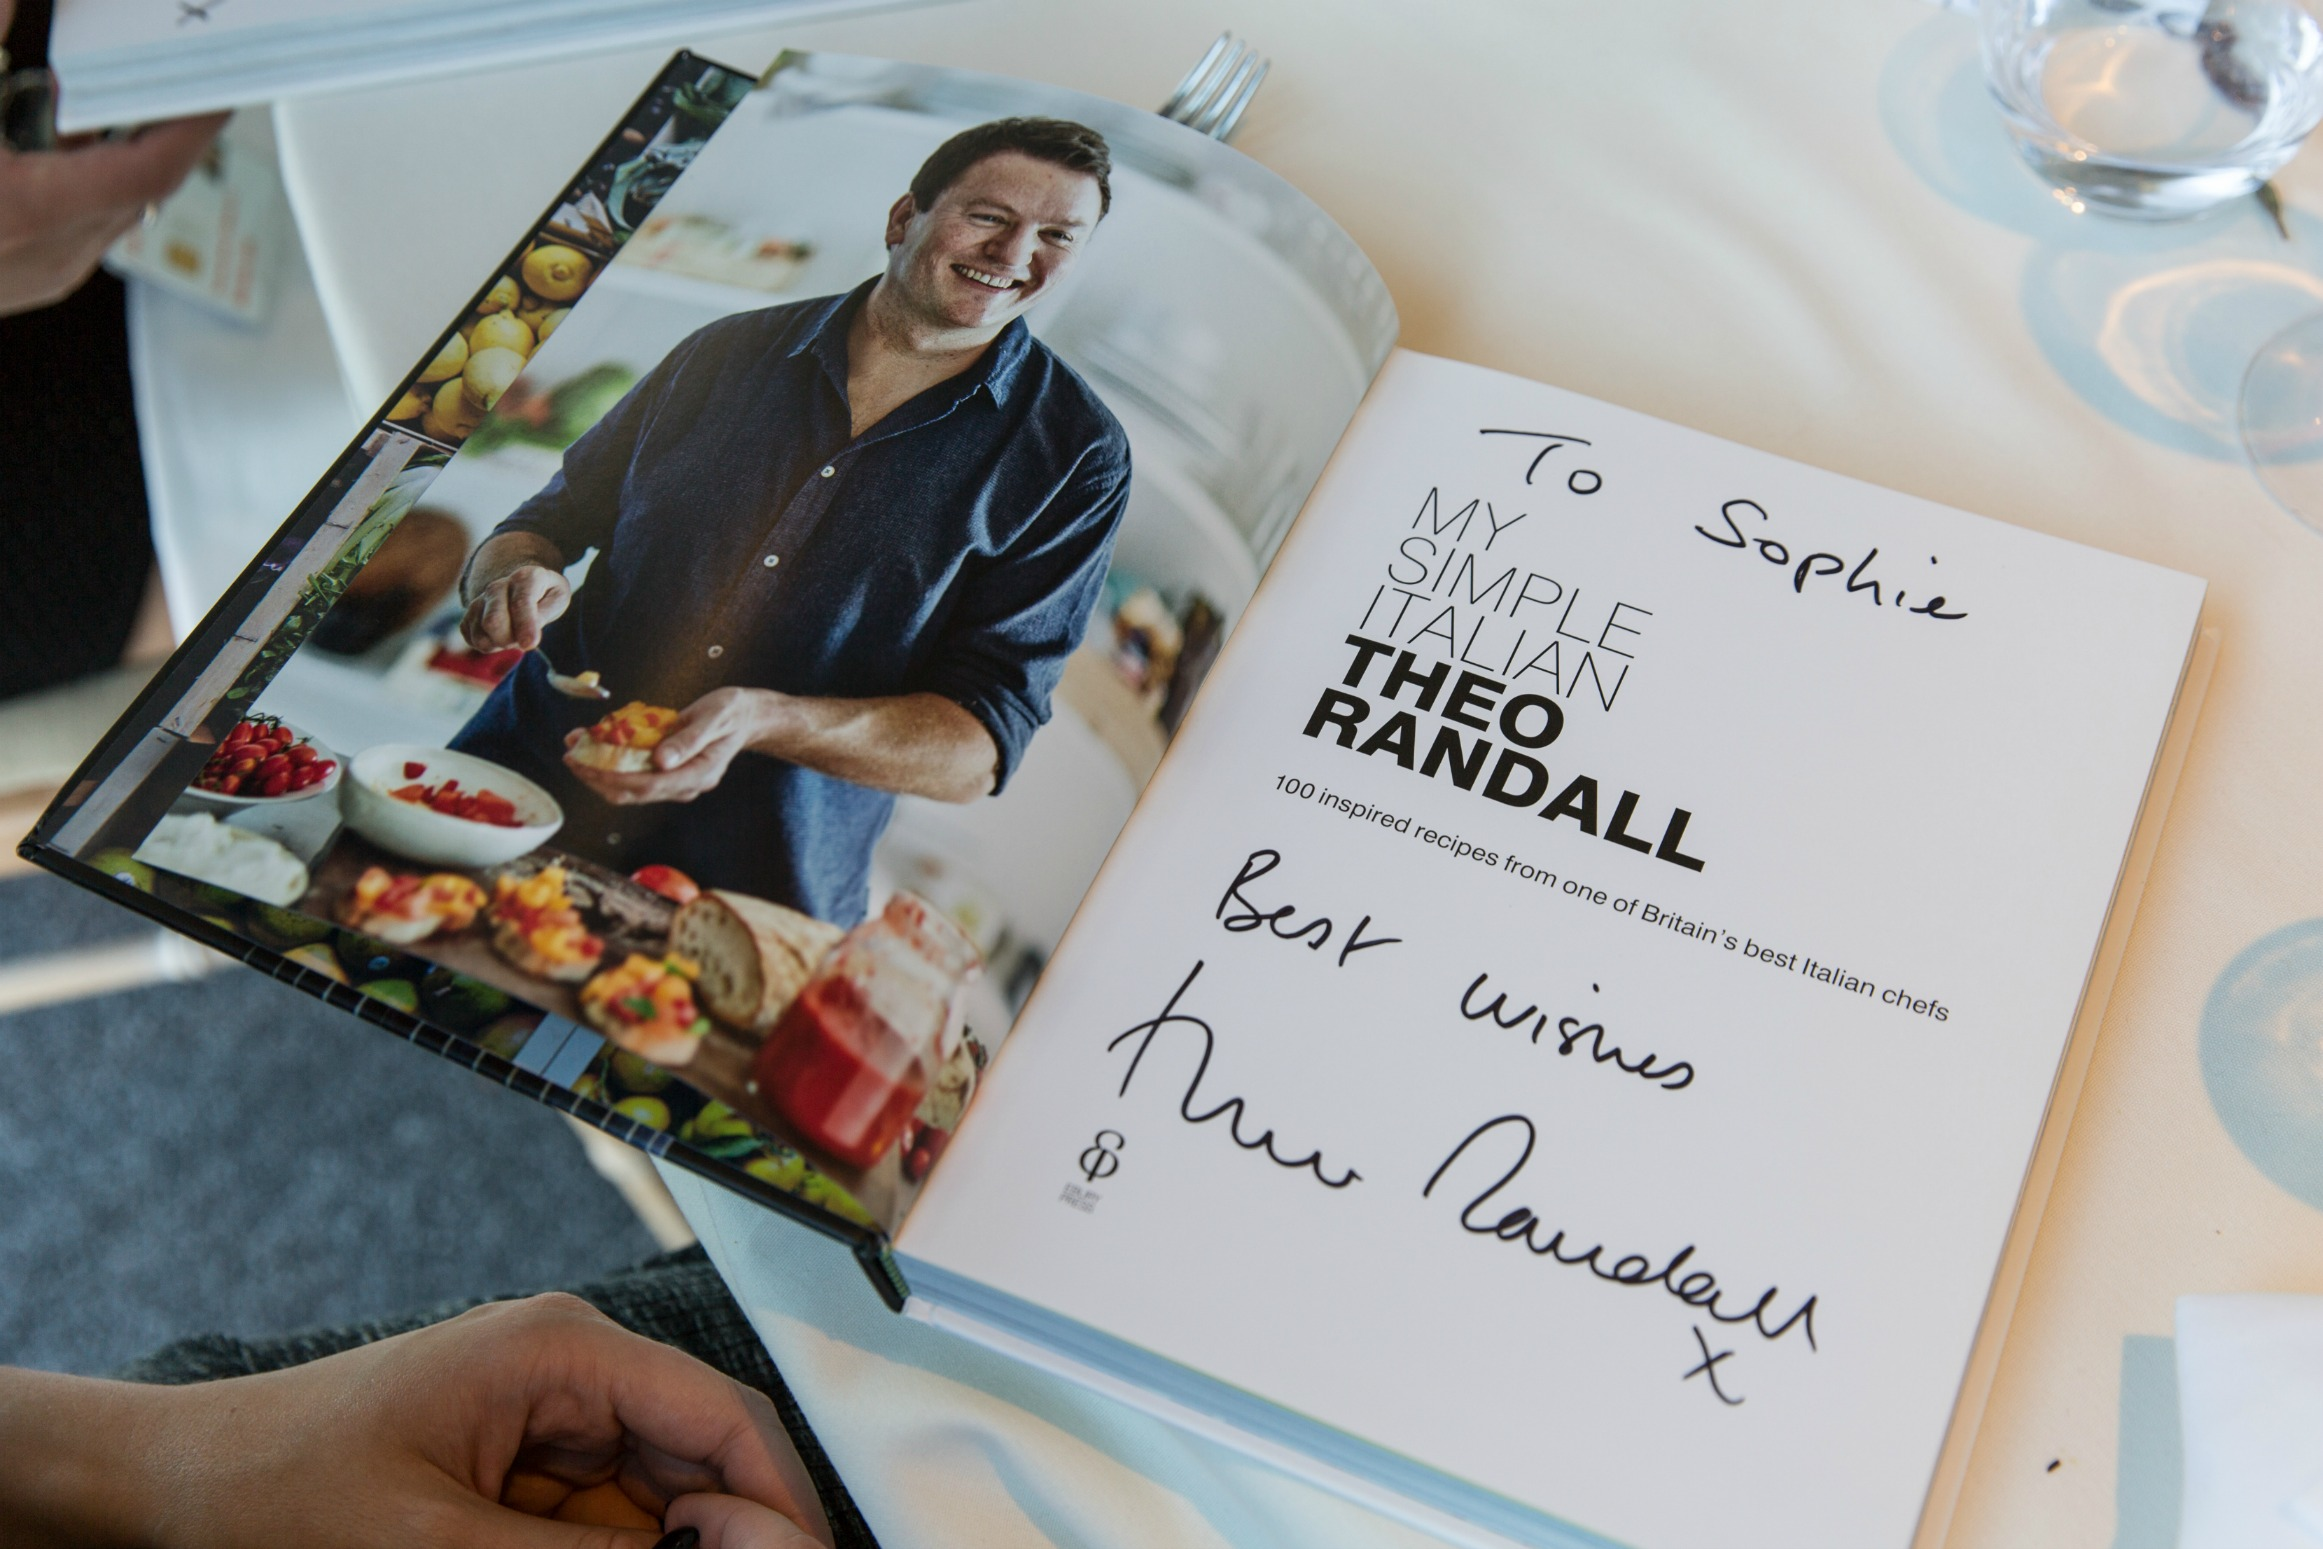 Signed Cookbook from Theo